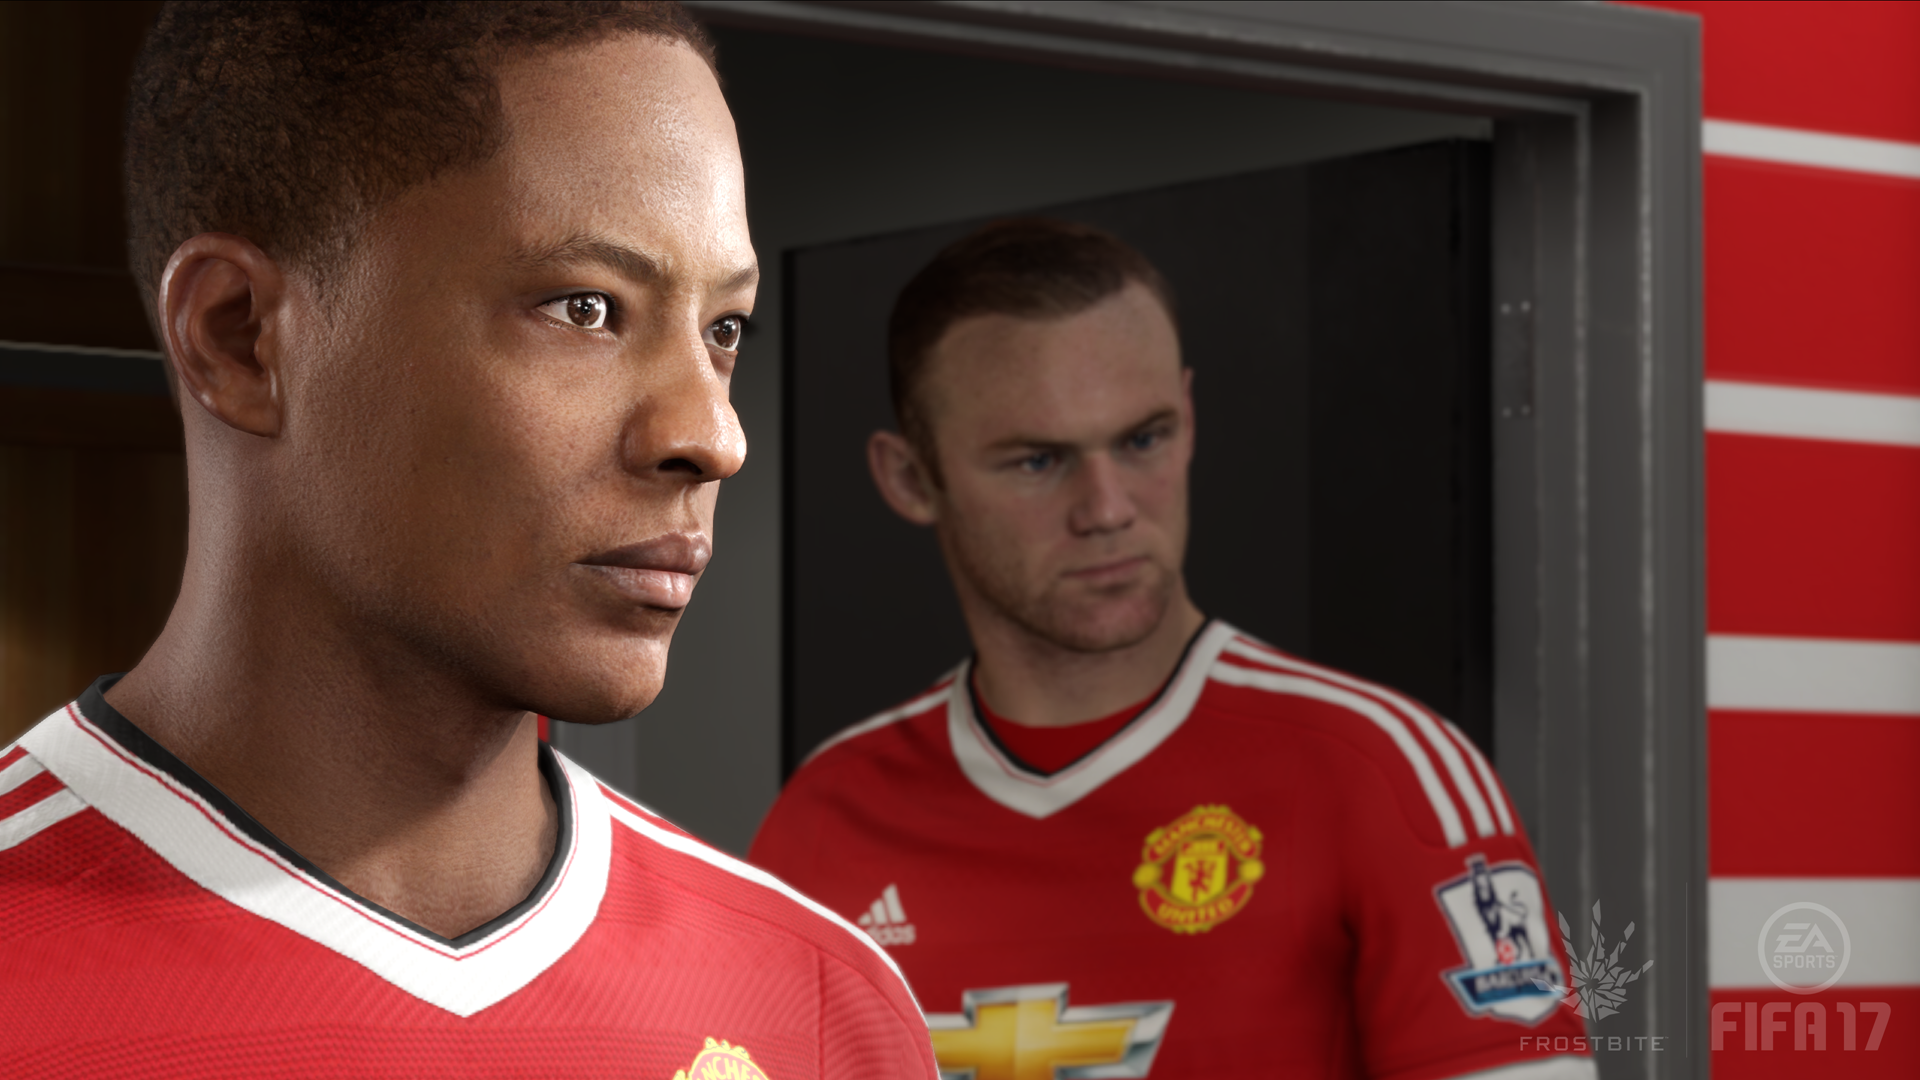 FIFA17_XB1_PS4_JOURNEY_HUNTER_ROONEY_WM (Copy)